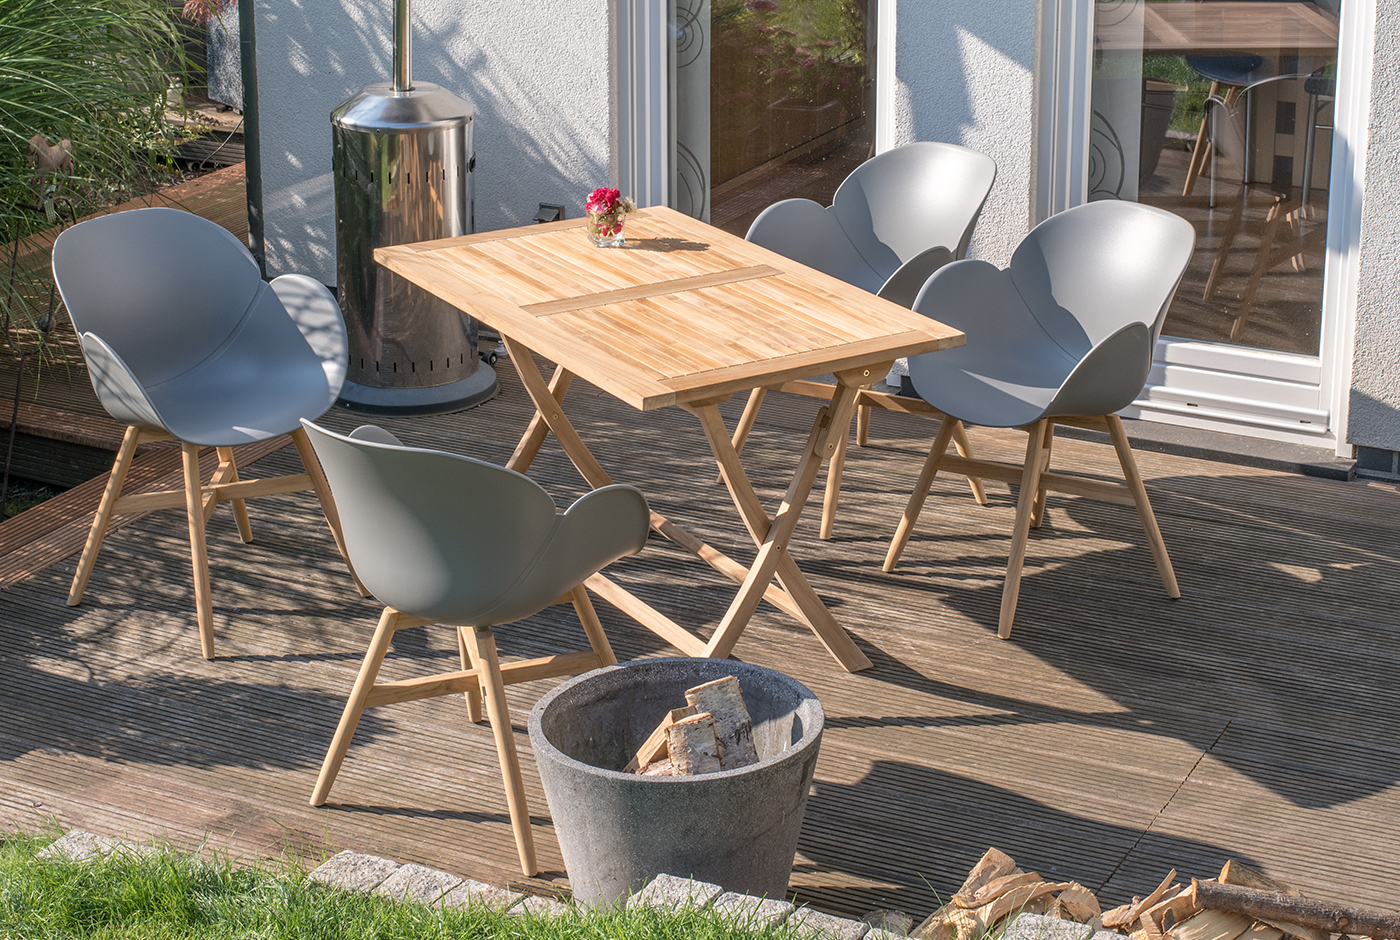 Gartenmobel Trends 2019